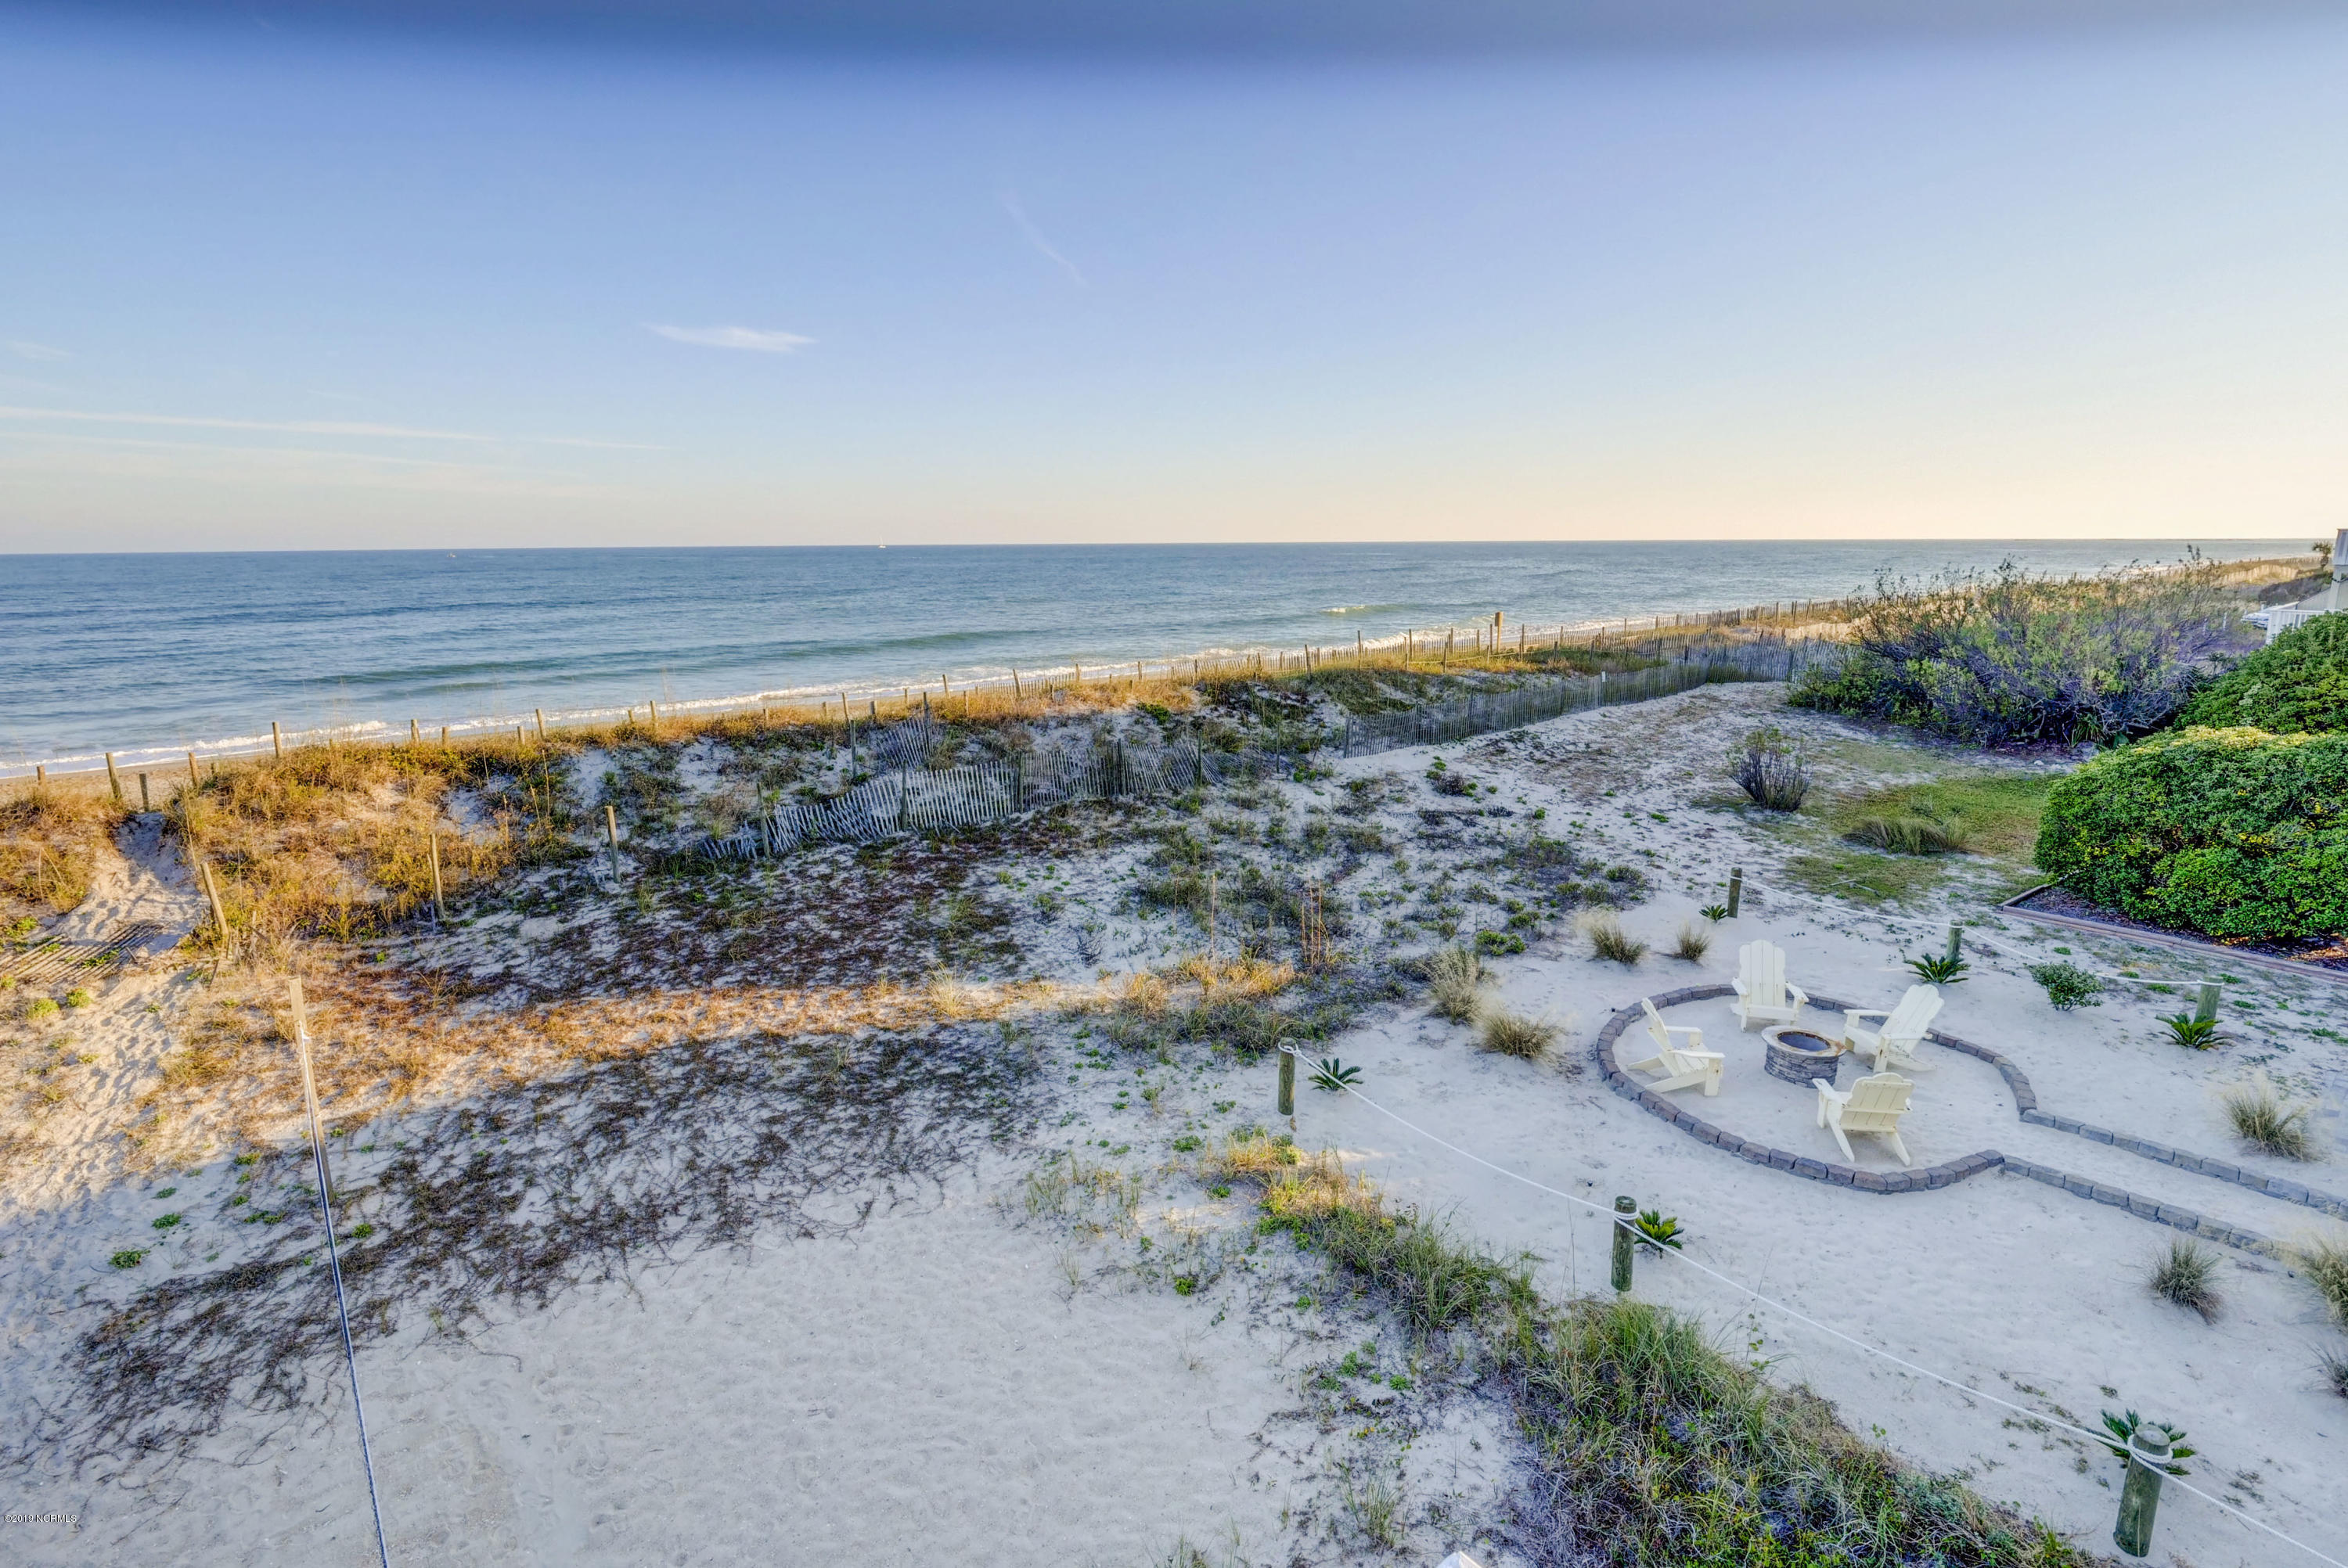 19 Atlanta Street, Wrightsville Beach, North Carolina 28480, 6 Bedrooms Bedrooms, 10 Rooms Rooms,5 BathroomsBathrooms,Single family residence,For sale,Atlanta,100192741